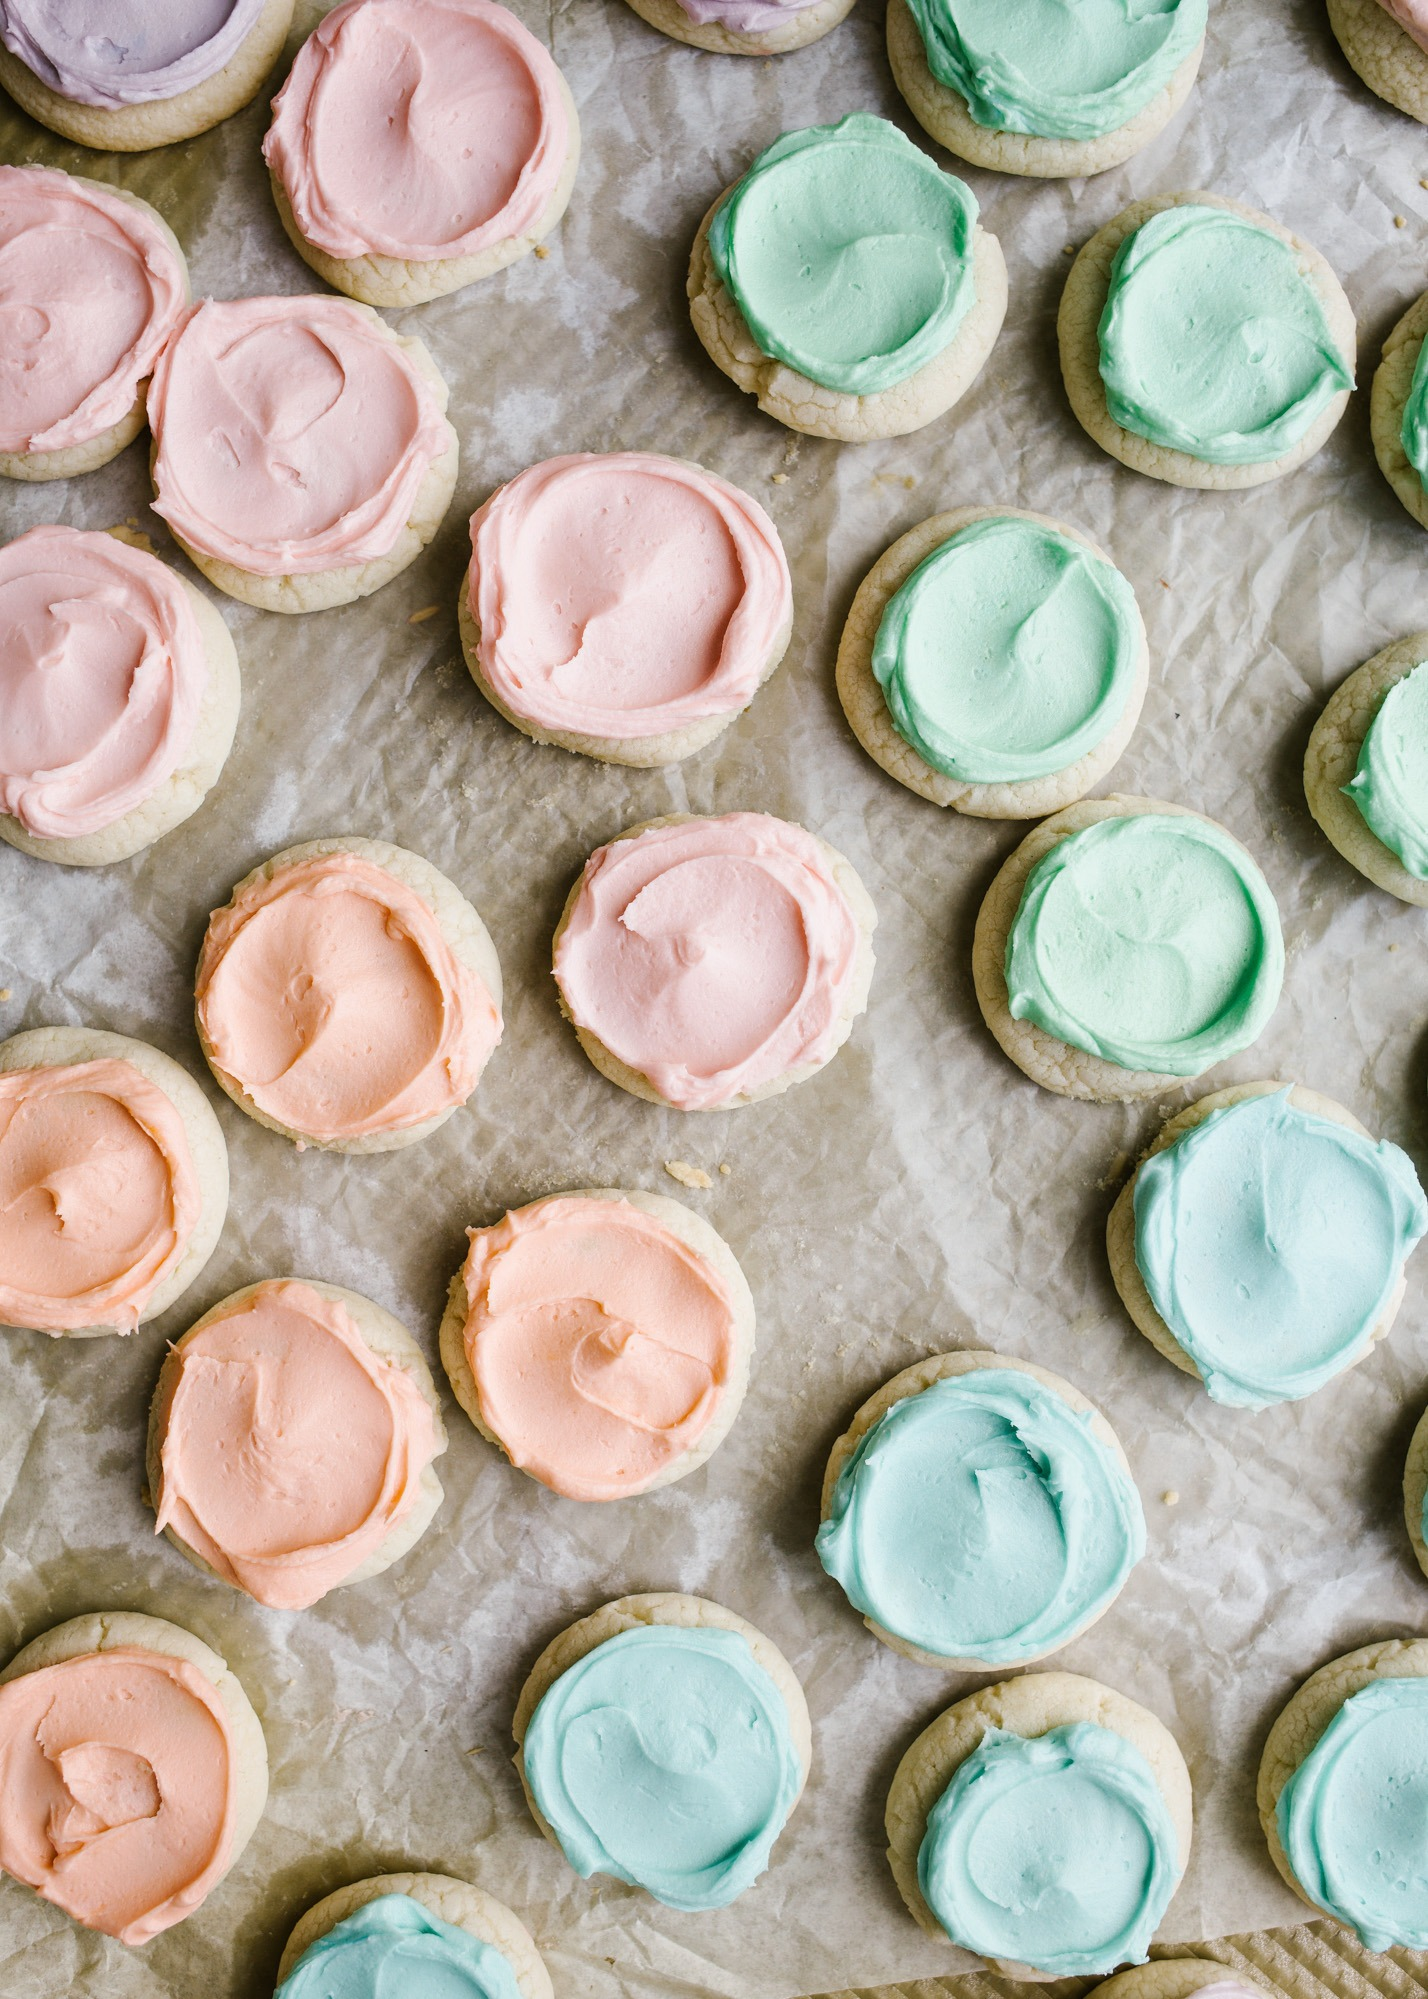 Pastel Lofthouse Cookies by Wood and Spoon Blog. These are copycat cookies for mini Lofthouse cookies that you can make homemade in your own favorite buttercream colors! Learn how simple these drop sugar cookies are and how to make that soft and fluffy buttercream cookie frosting on thewoodandspoon.com